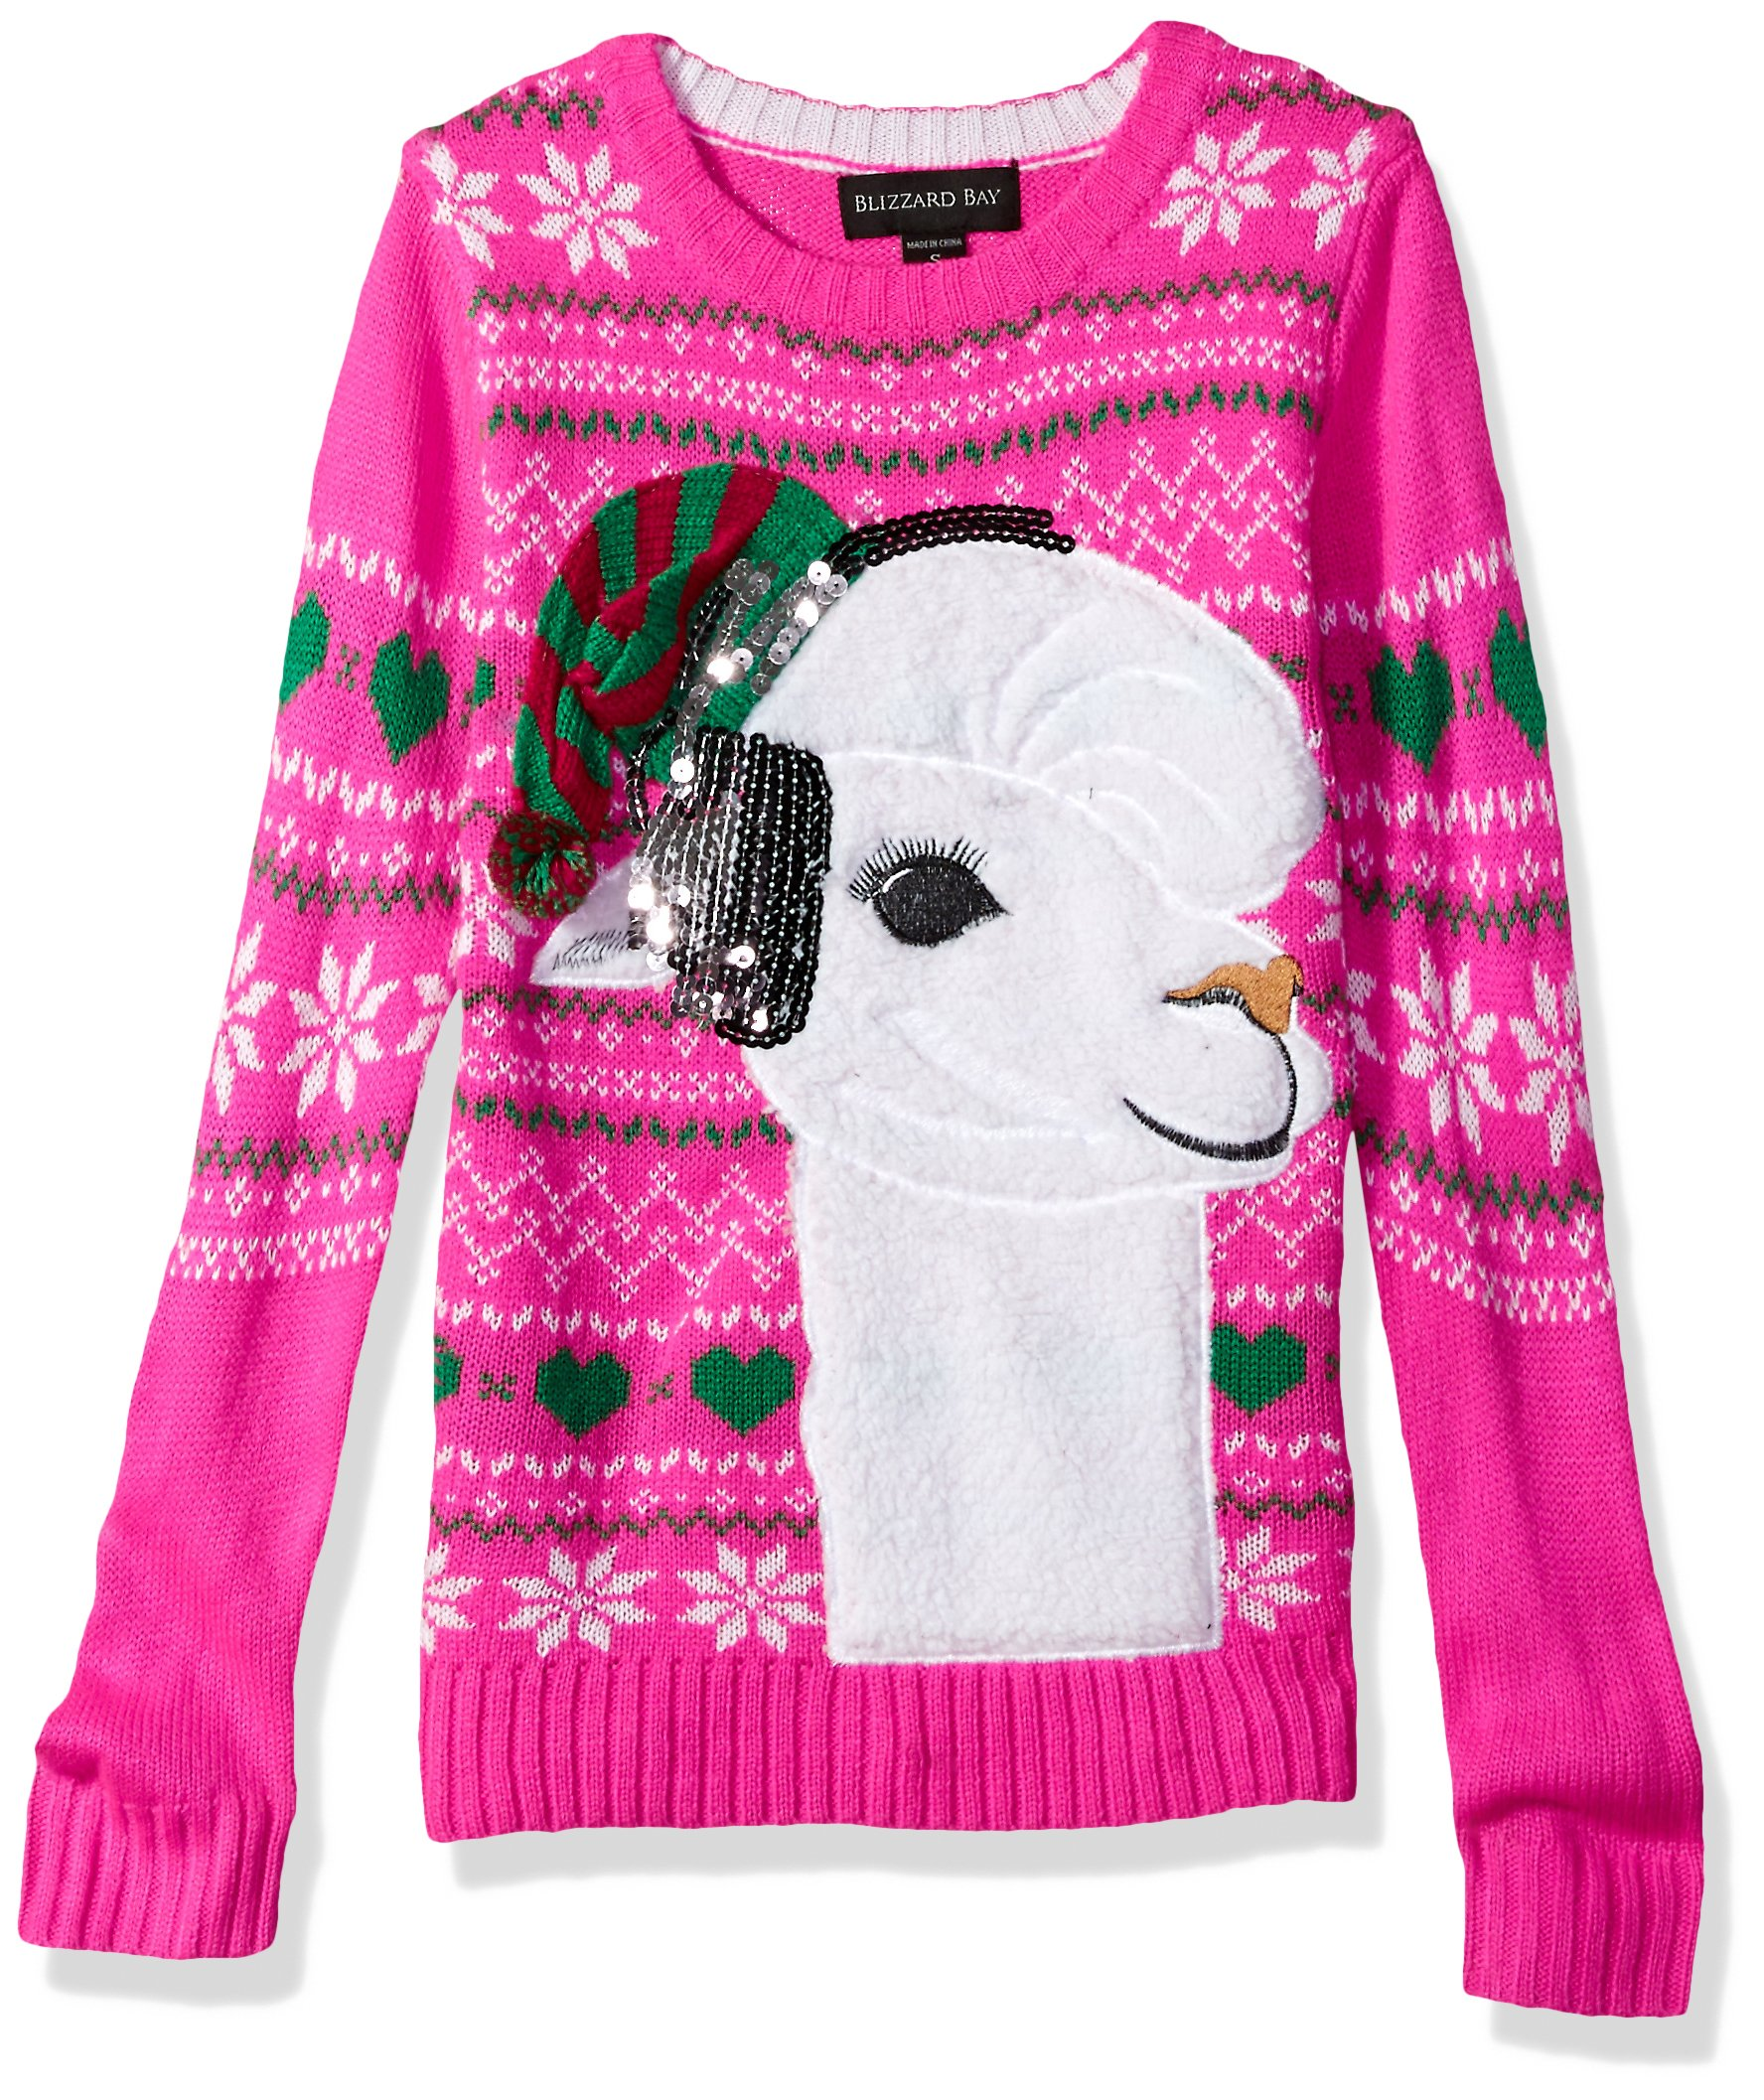 Llama Christmas Sweater.Blizzard Bay Girls Fuzzy Llama W Sequin Big Girl Xmas Sweater Pullover Sweater Christmas Jumpers Uk